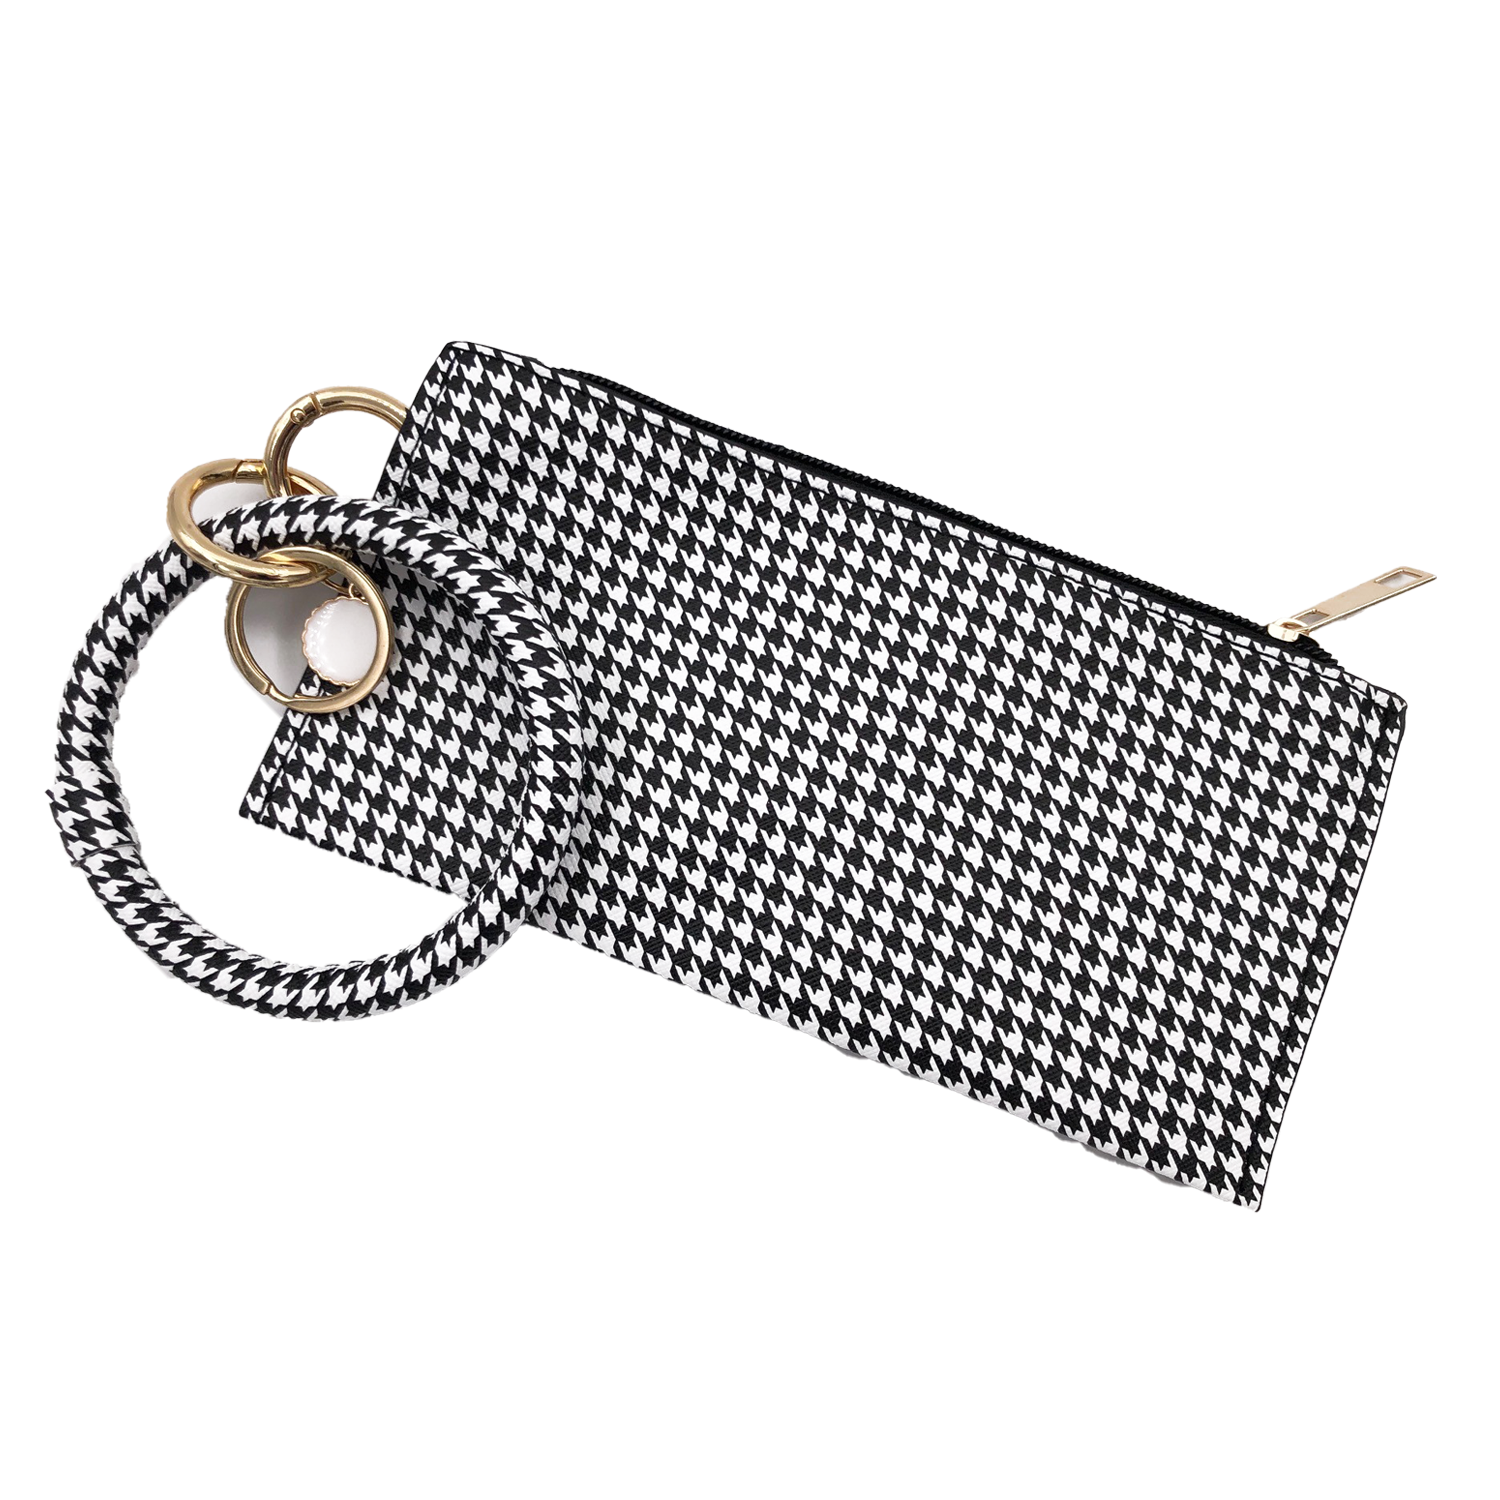 CL-8848 Wristlet Clutch Houndstooth